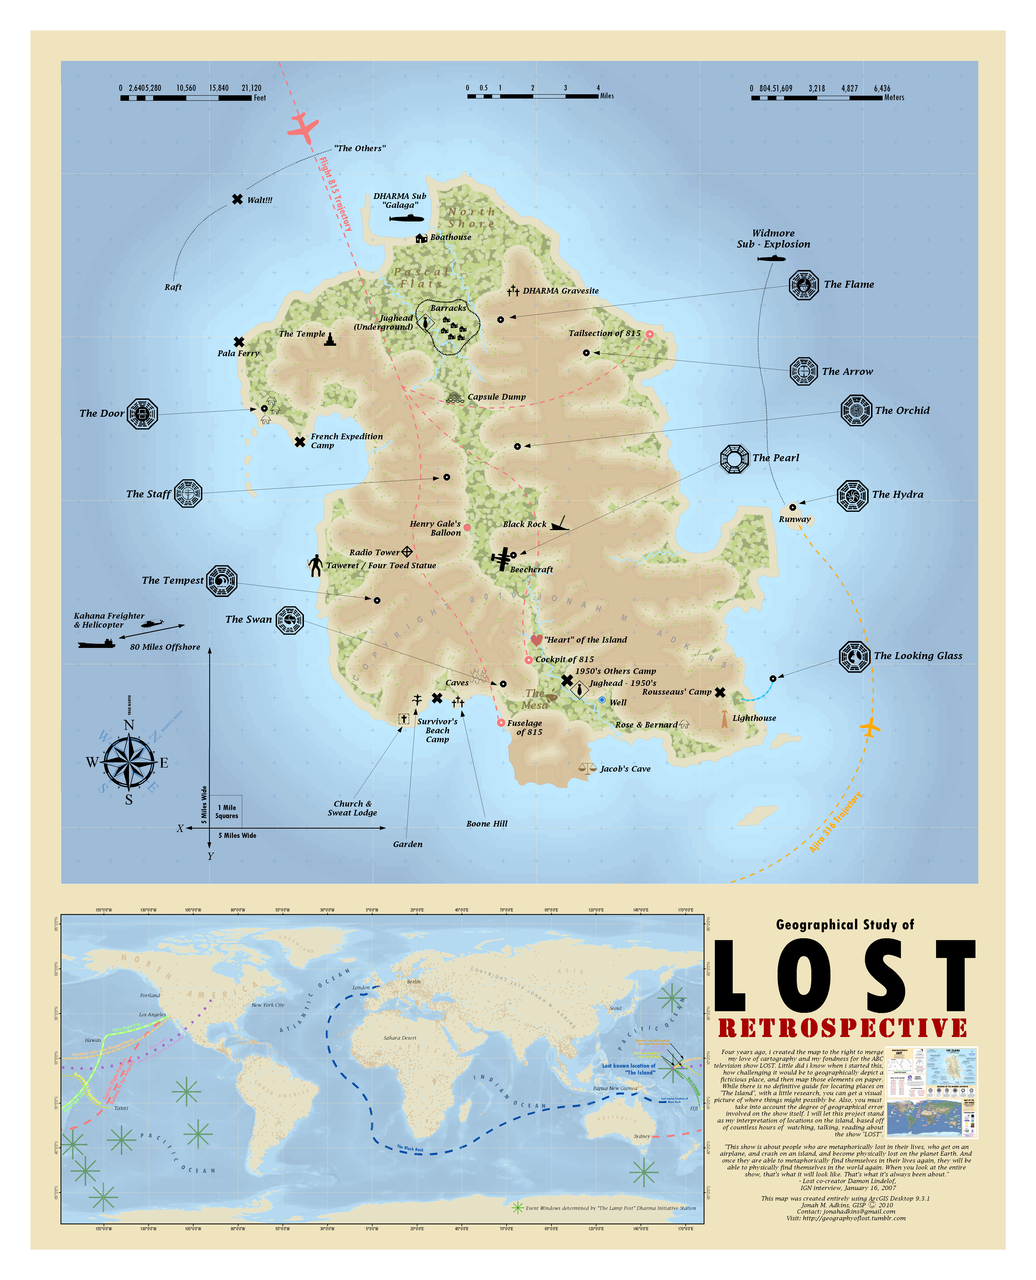 Professional Cartographer Creates The Best Map Of Losts Island - Maps Of Us Television Show Preference